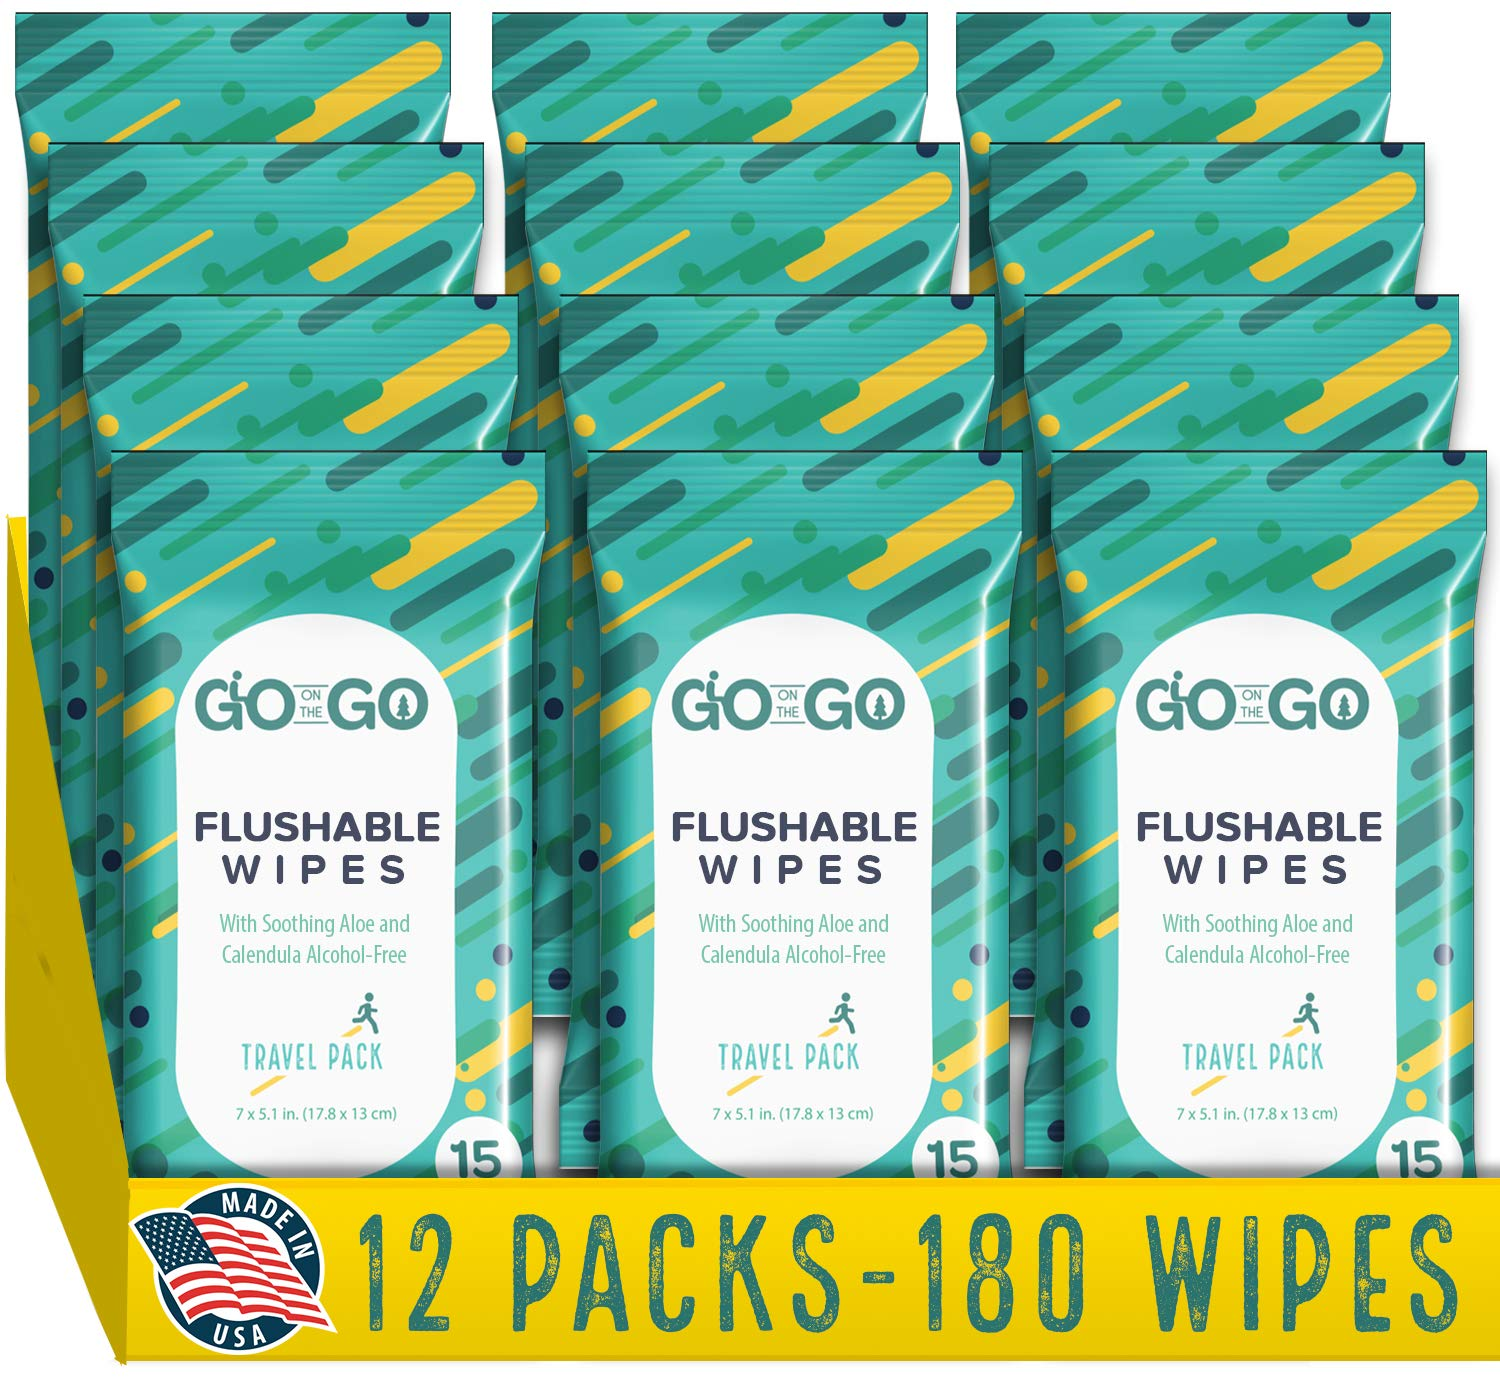 Flushable Wet Wipes for Travel by Go on the Go - Biodegradable, Alcohol-Free, with Soothing Aloe and Calendula, 12 packs of 15 count Each (180 Wipes Total) by GO ON THE GO